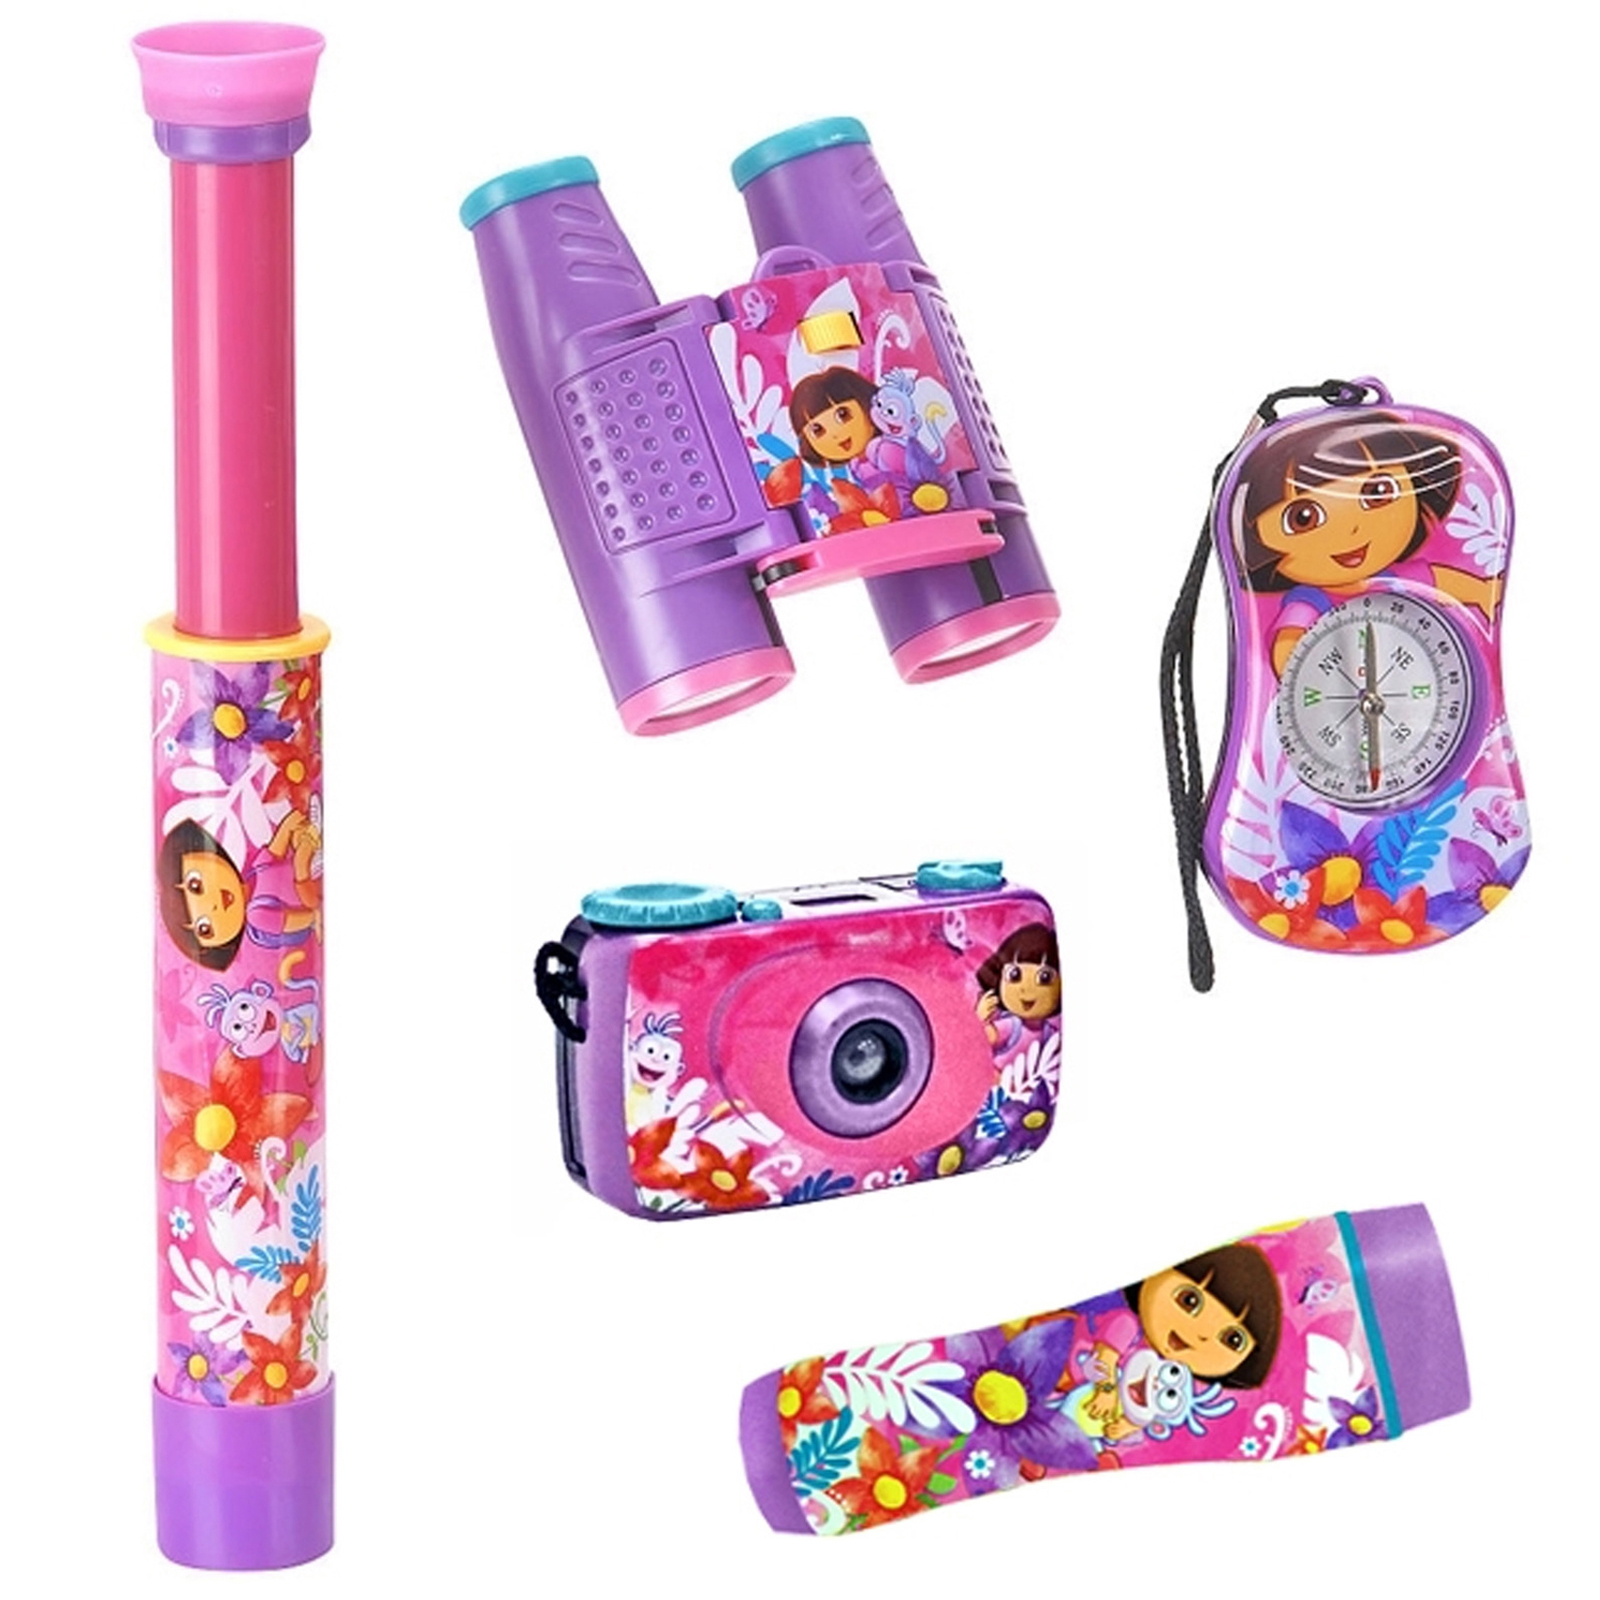 Dora the Explorer Adventure Kit by Nickelodeon